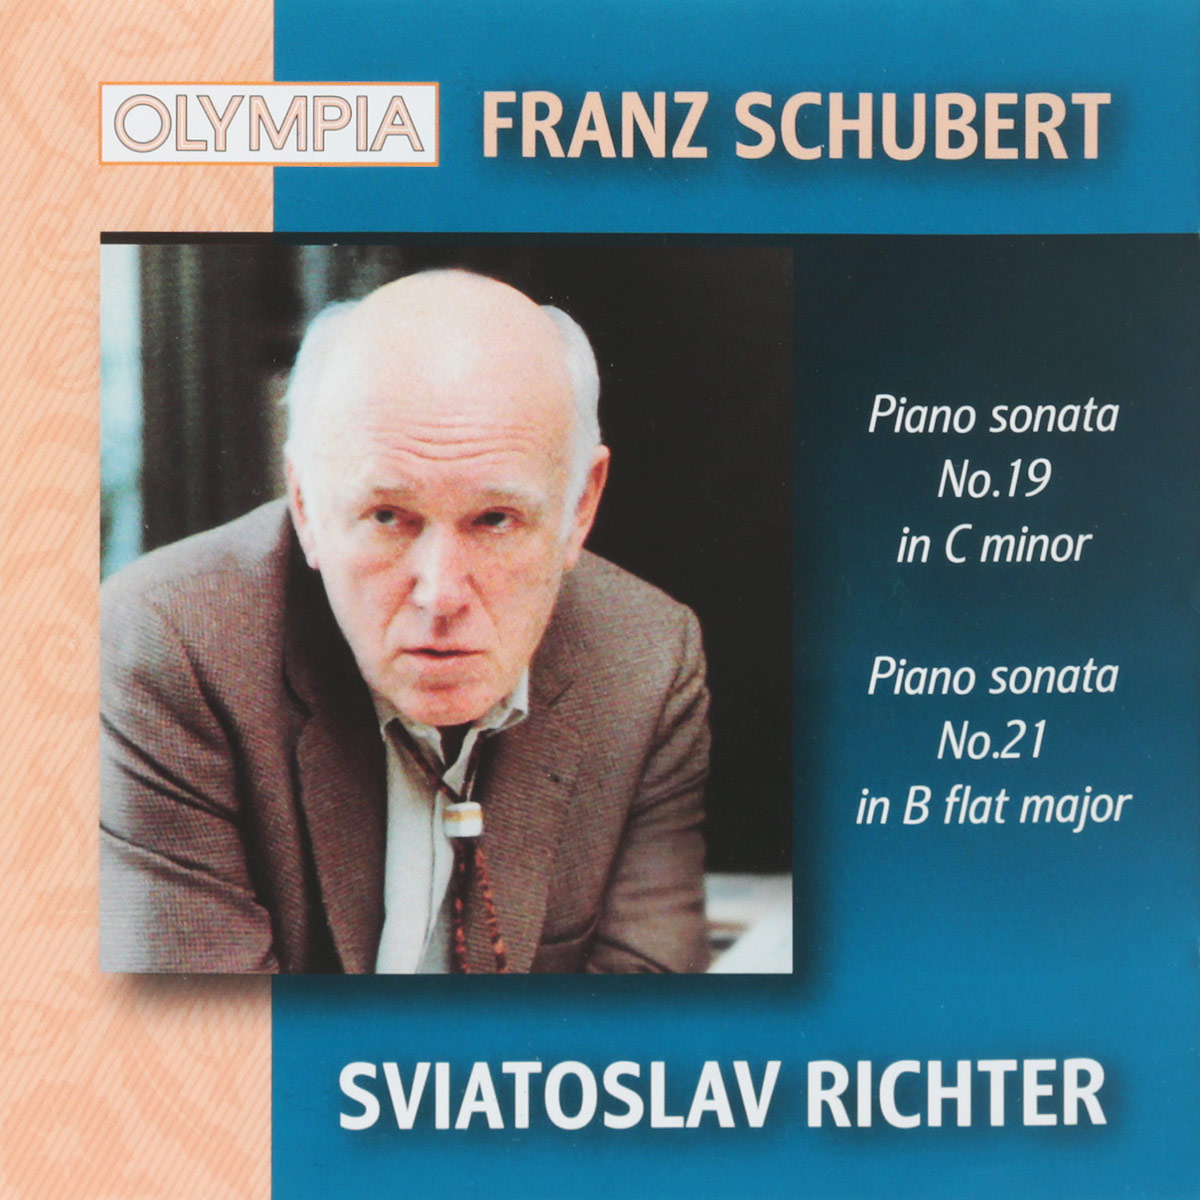 Святослав Рихтер Sviatoslav Richter. Franz Schubert. Piano Sonatas миша майский franz schubert songs without words mischa maisky daria hovora